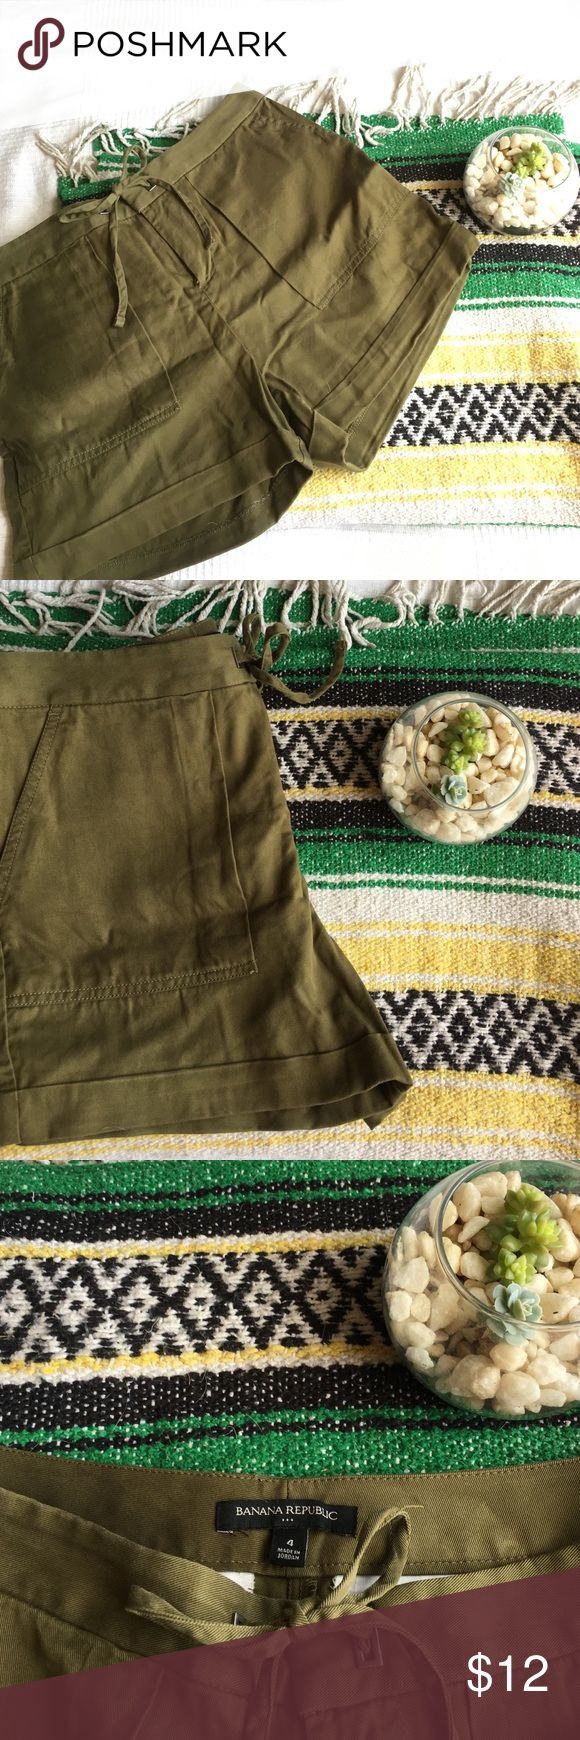 Army Green Shorts Channel your in er safari guide in this pair of adorable army green shorts. High waisted, deep front pockets, drawstring waist, cuffed, super silky material! *Factory Item* Banana Republic Shorts